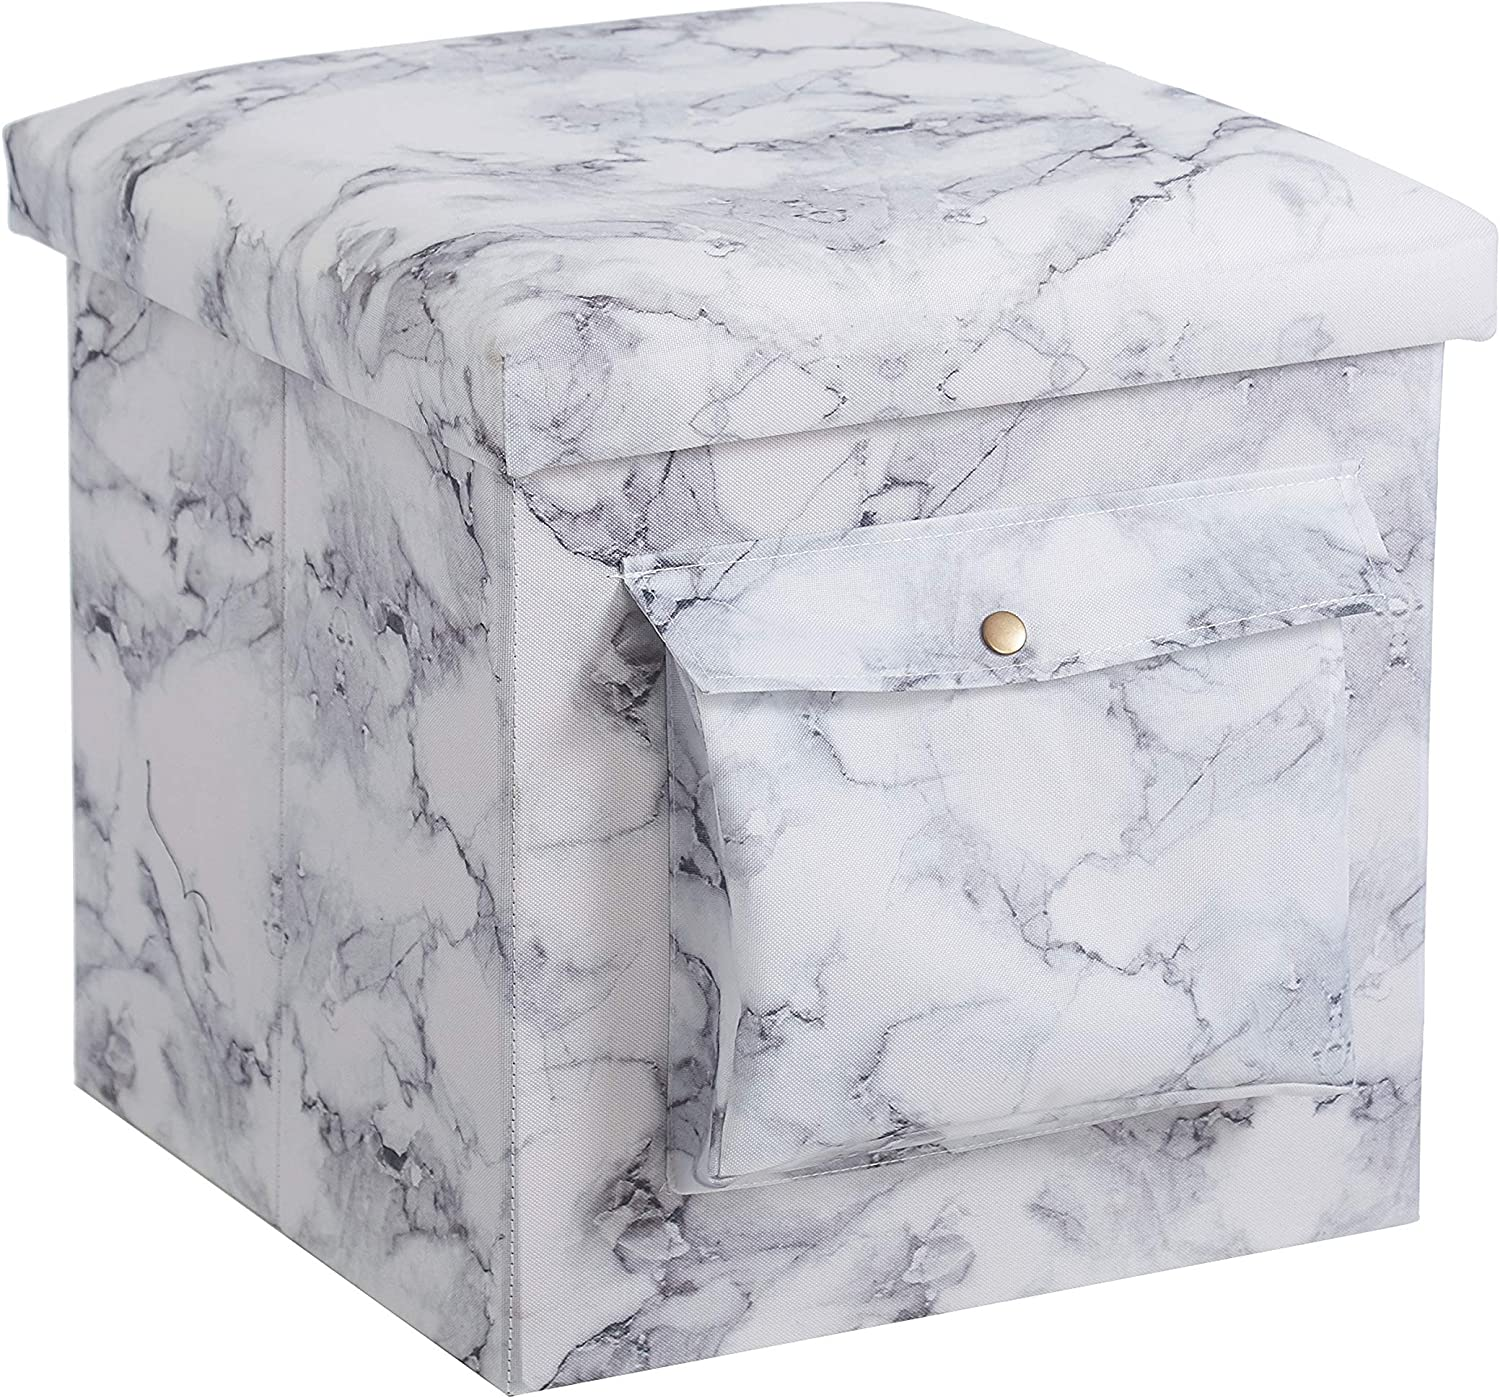 "Urban Shop Collapsible Storage Ottoman with Laptop Stand Tray Lid and Storage Pocket, Marble,15""x15""x15"", White"